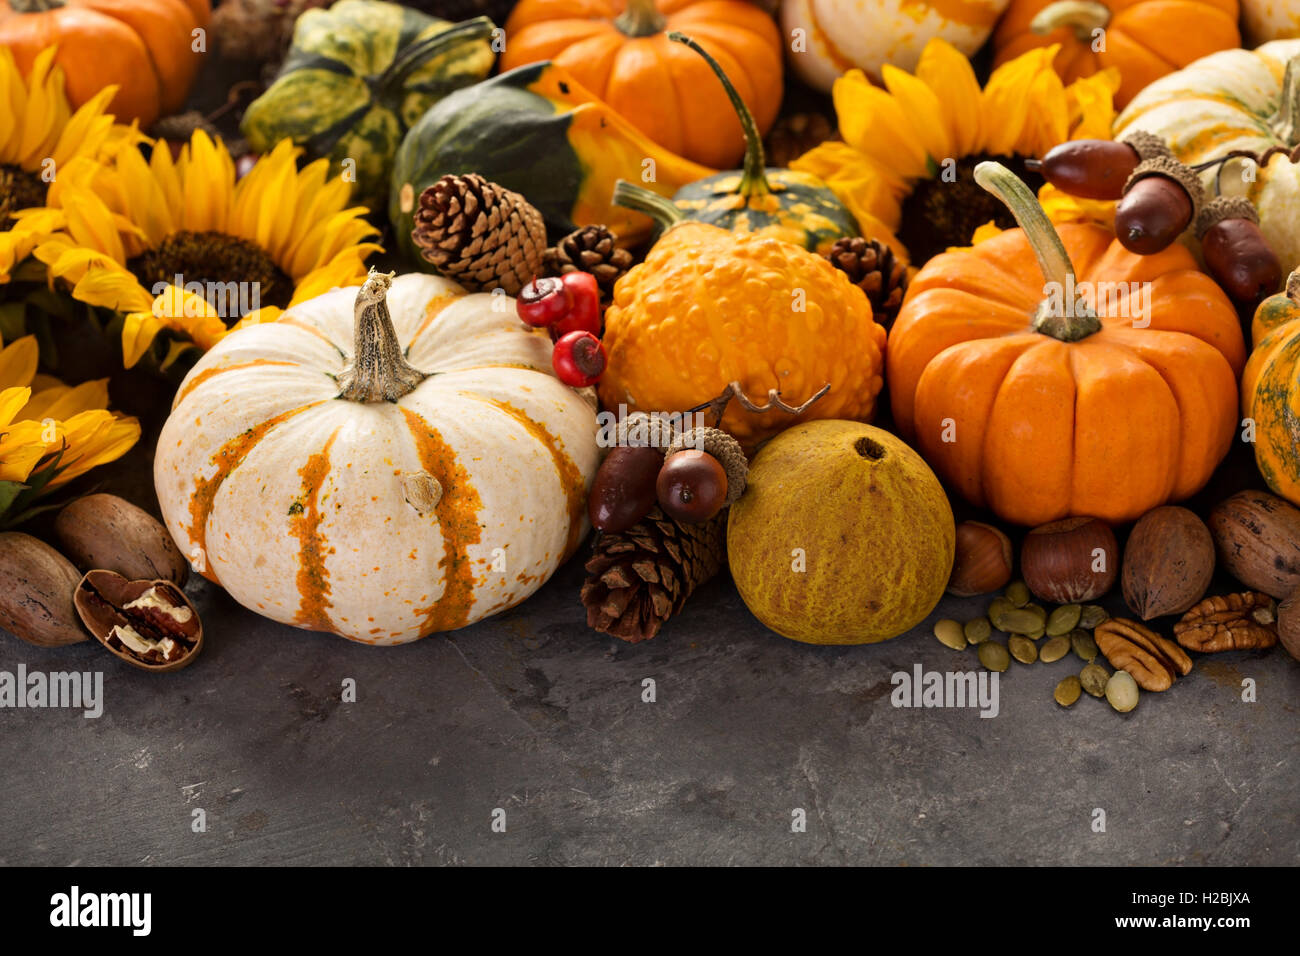 Fall background with pumpkins - Stock Image